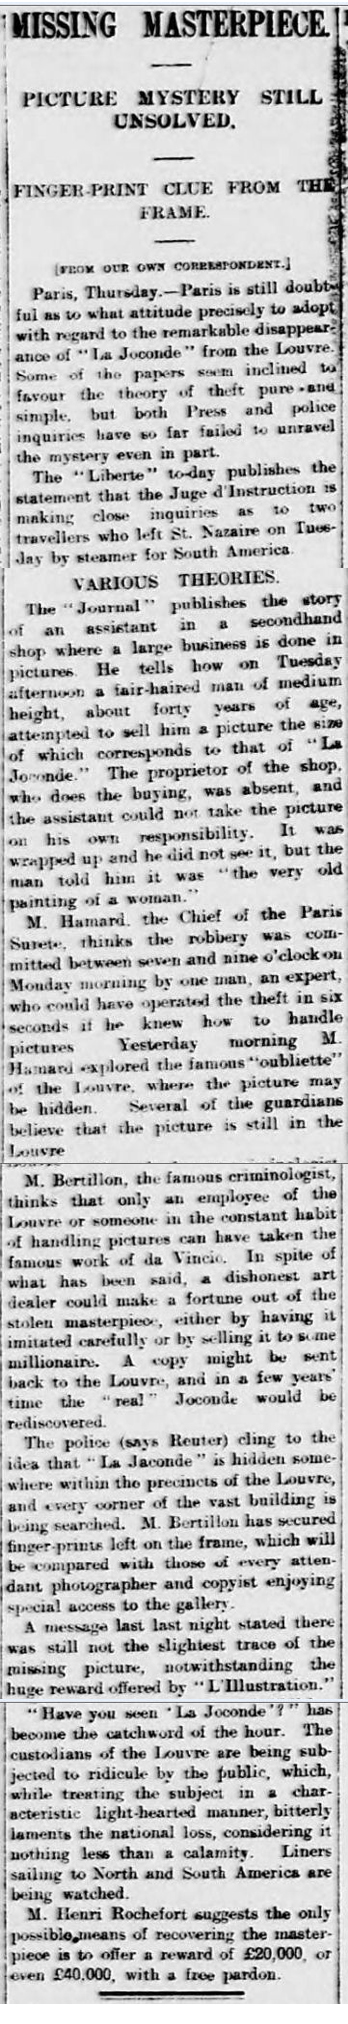 old newspaper report on the on the theft of the Mona Lisa from the Louvre in 1911